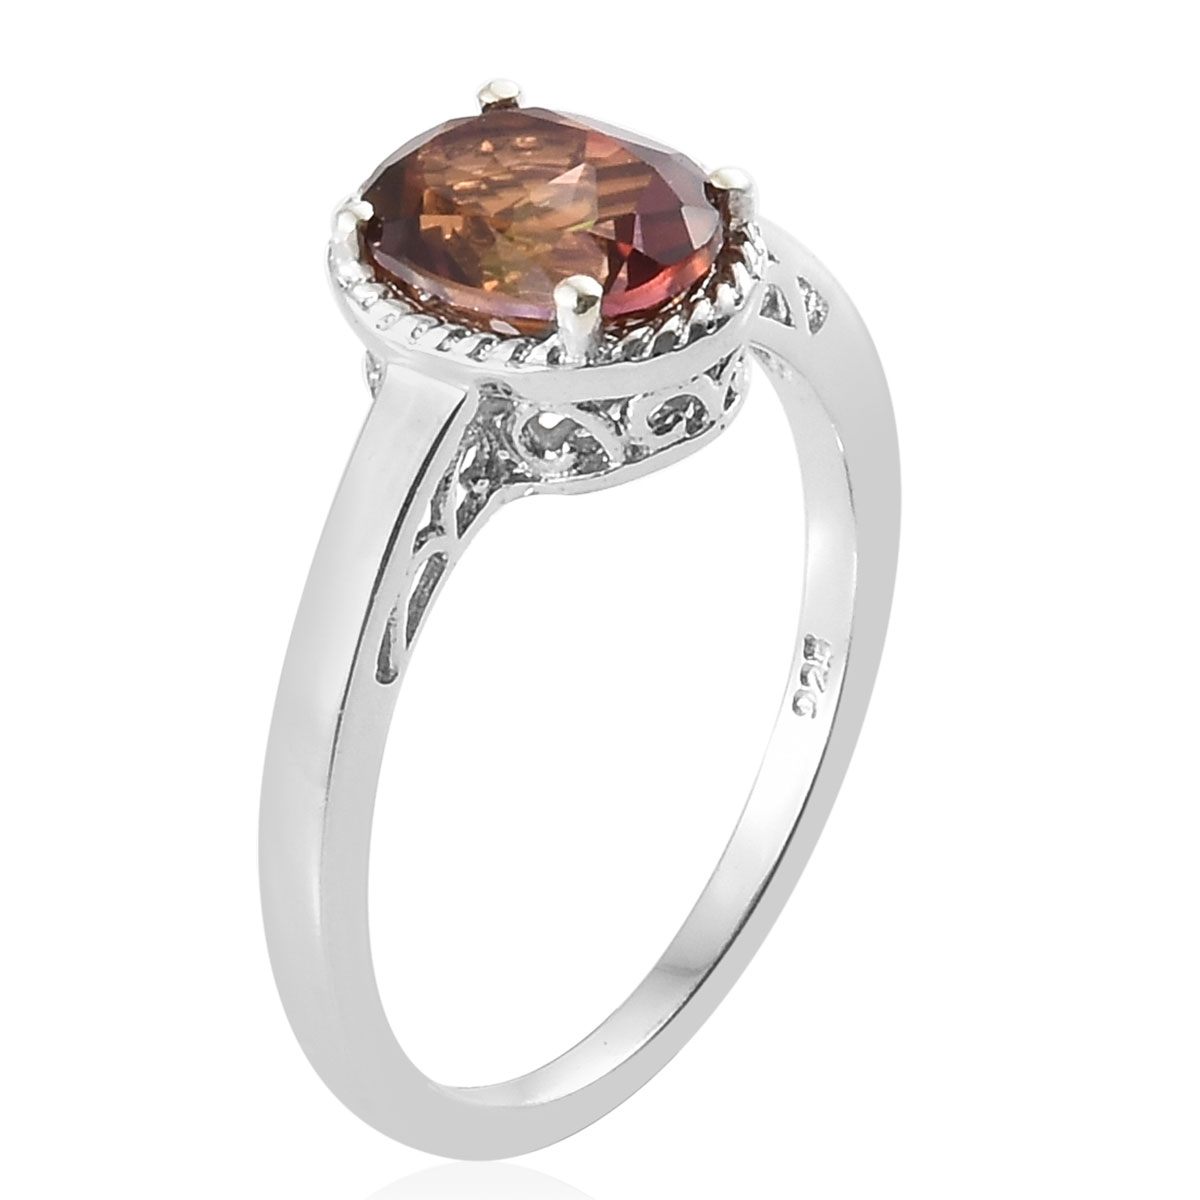 Calico Biddy Topaz Platinum Over Sterling Silver Ring (Size 8.0) TGW 2.25 cts.